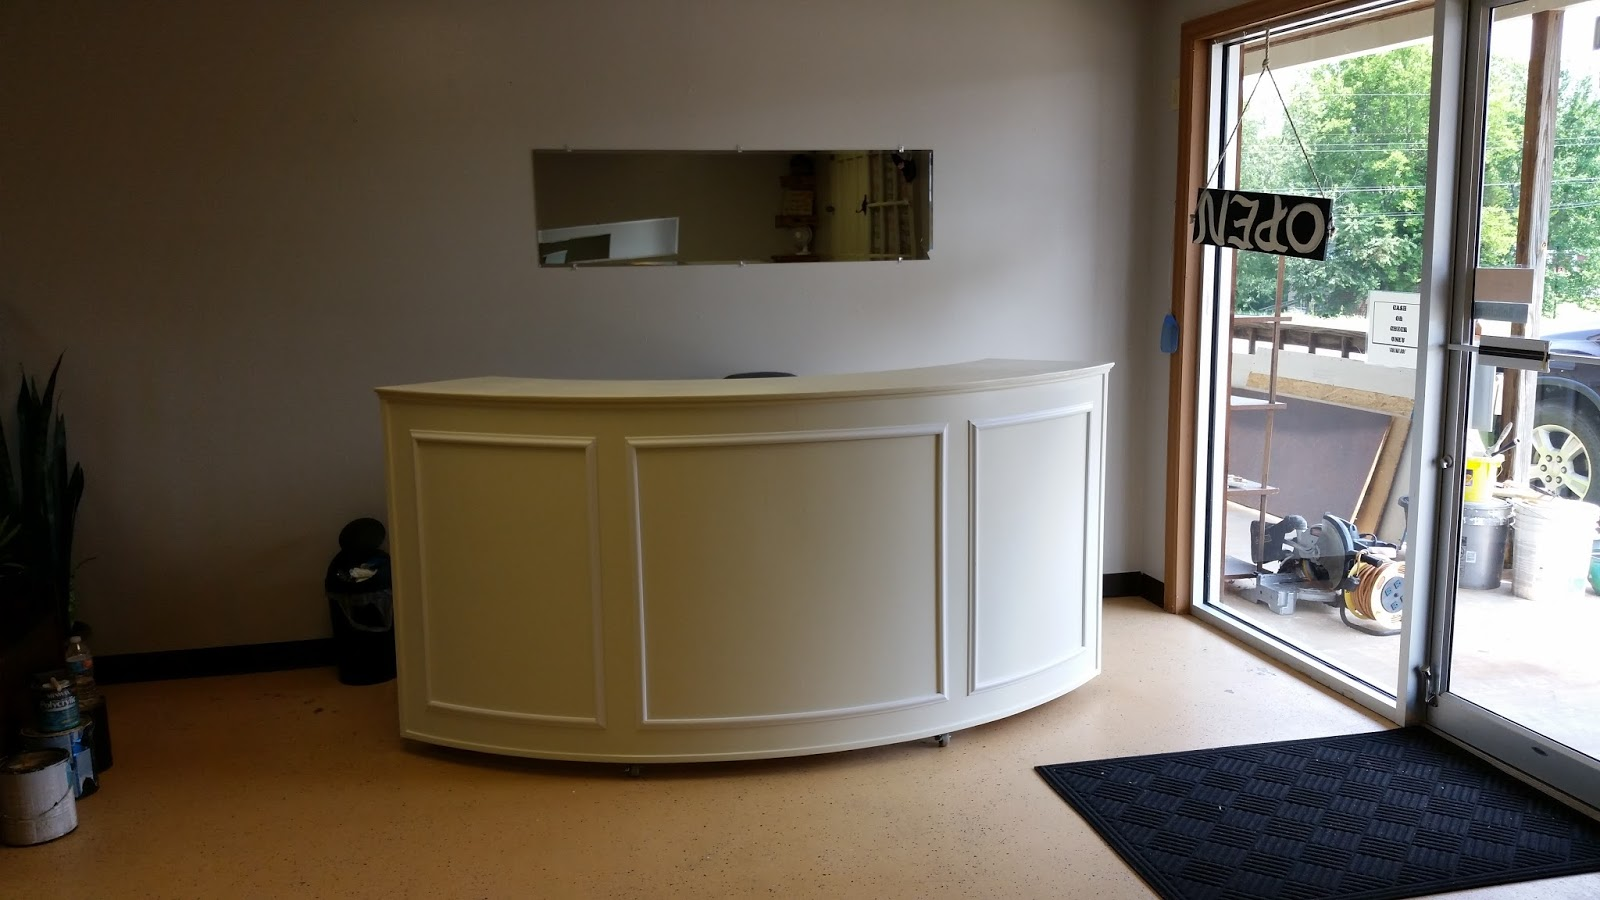 Handyman how 2 building a round reception desk round reception desk solutioingenieria Gallery